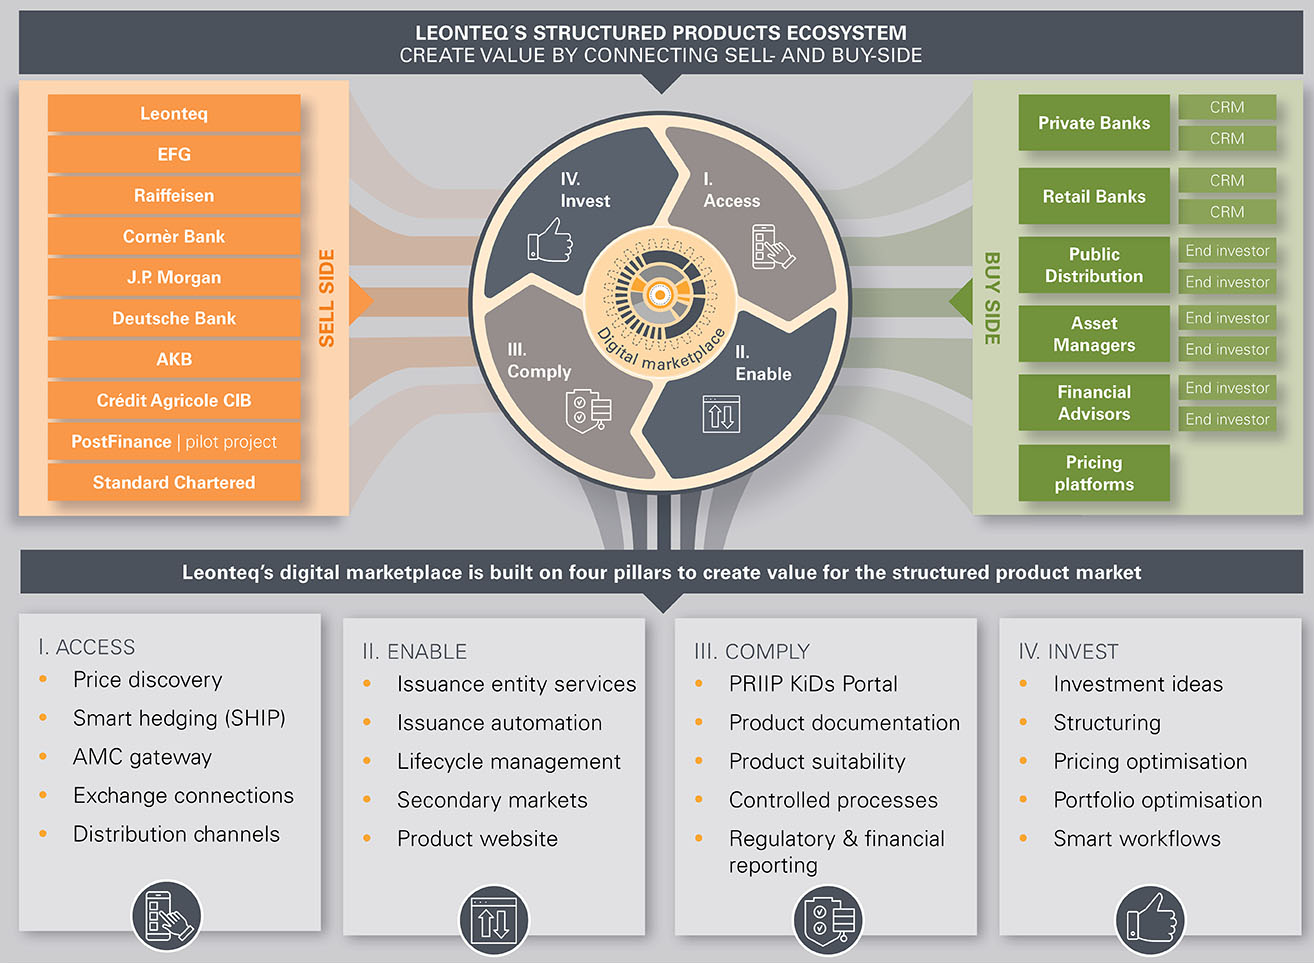 Leonteq-structured-products-Digital-Marketplace_en_1314x963px